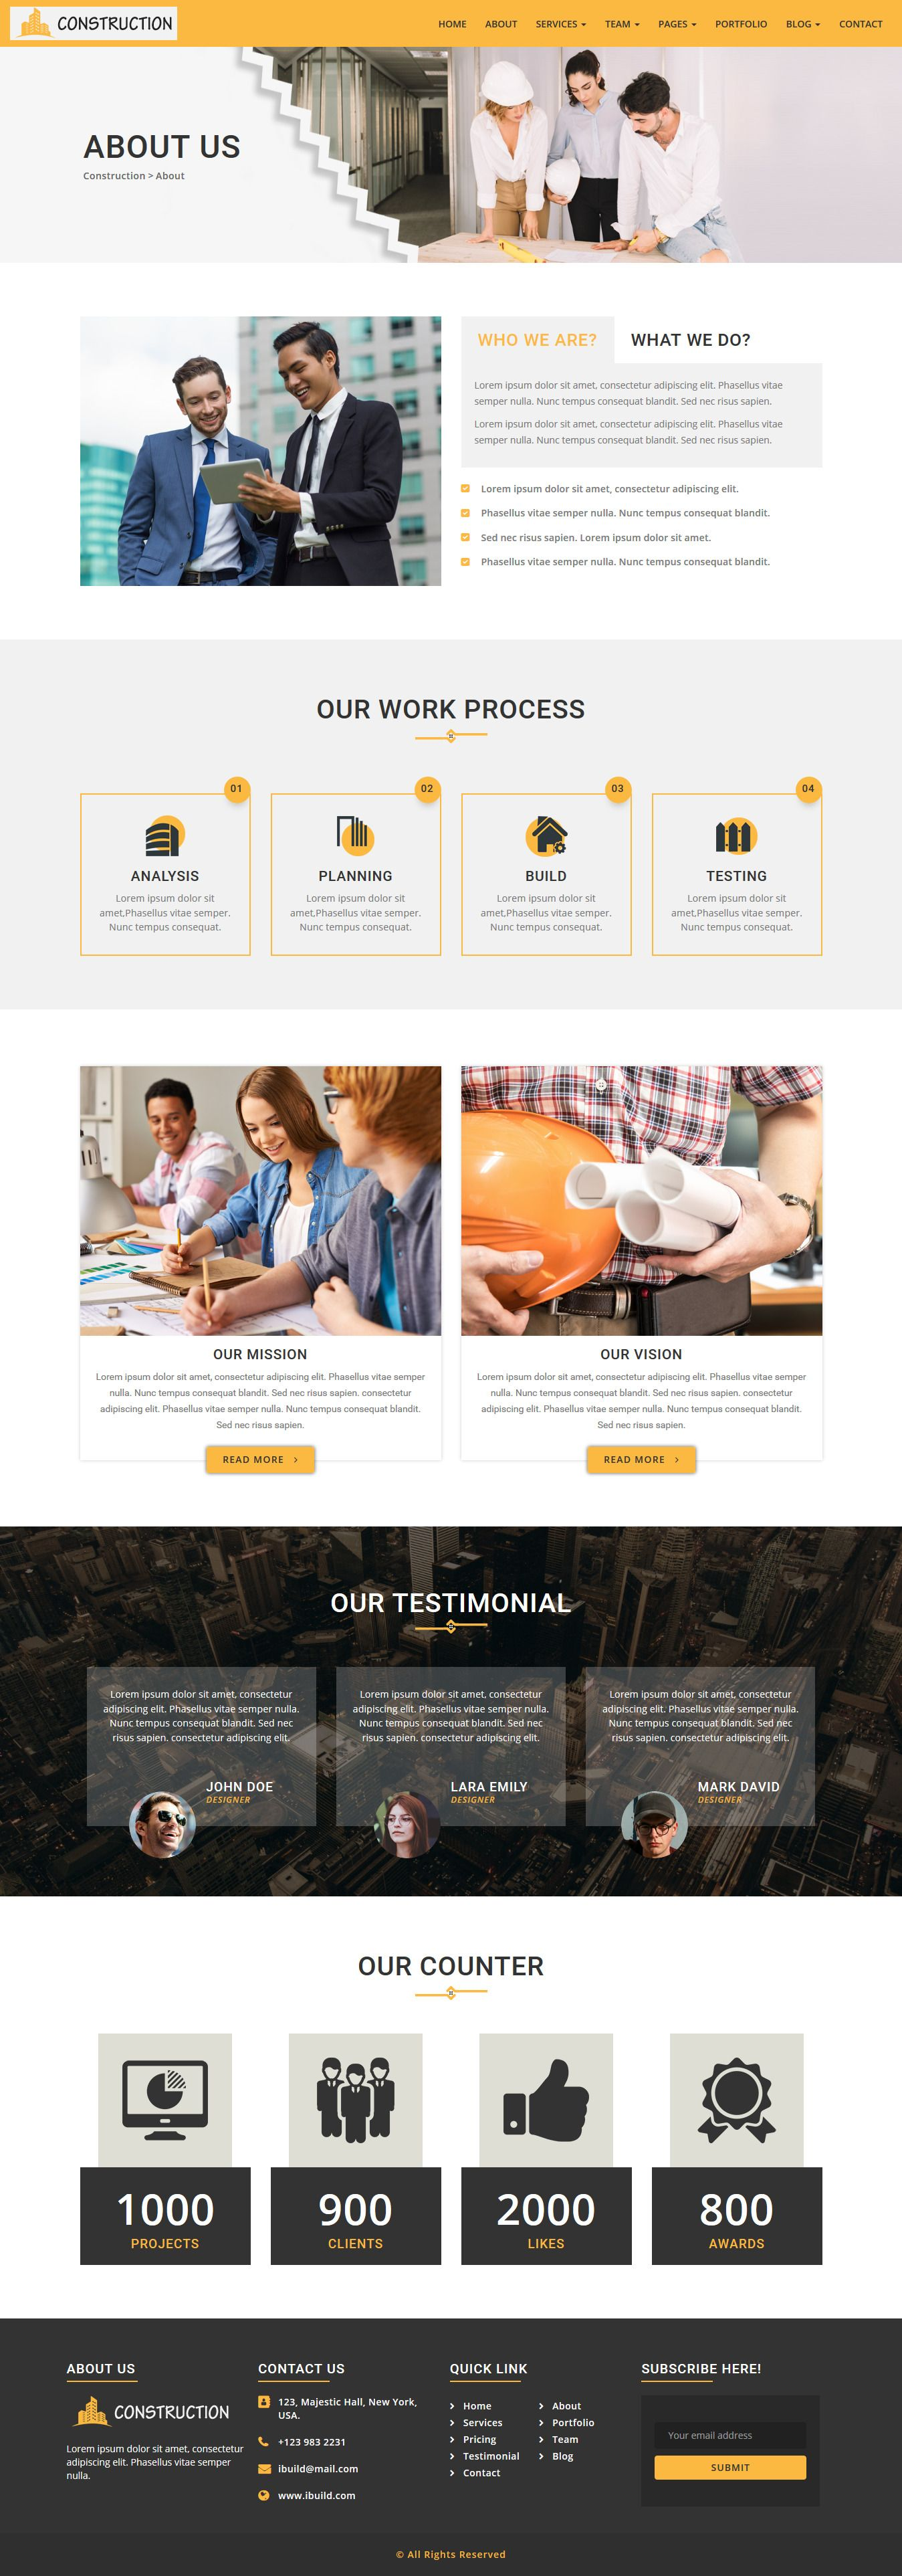 iConstruction - WordPress Theme Screenshot 2